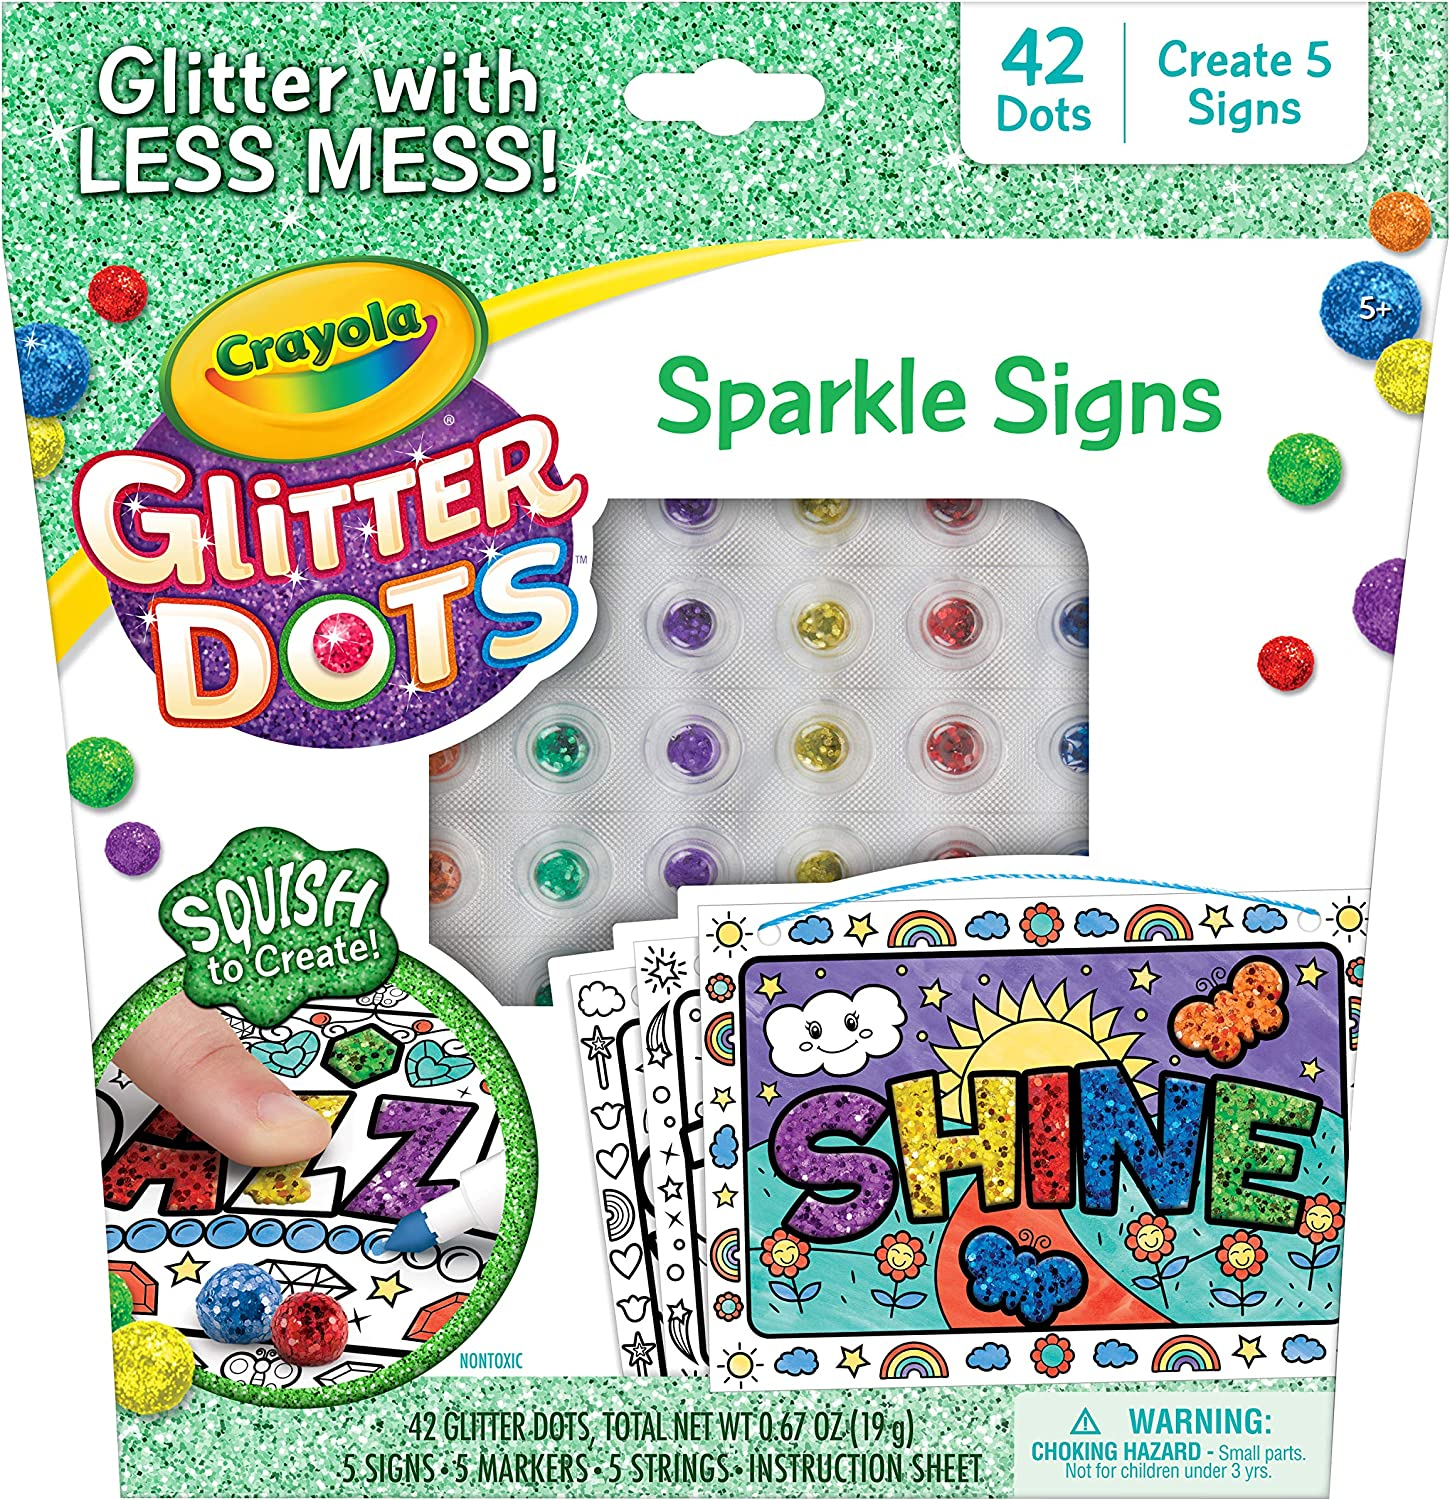 Crayola Glitter Dots Sparkle Signs Craft Kit, at Home Crafts for Kids, Age 5+